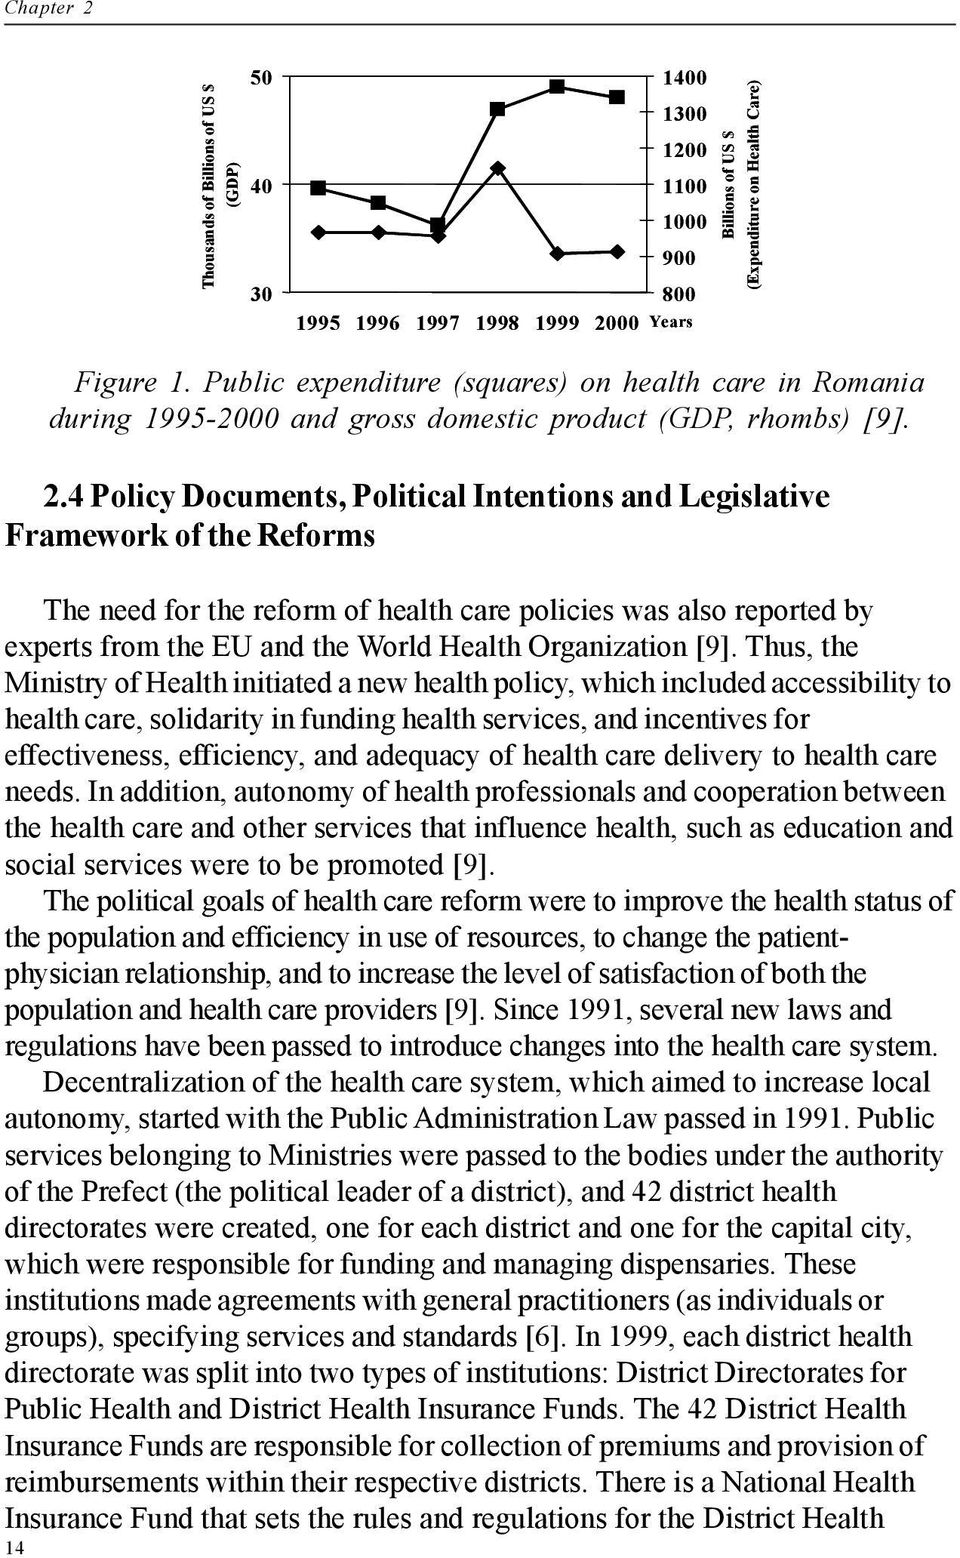 4 Policy Documents, Political Intentions and Legislative Framework of the Reforms The need for the reform of health care policies was also reported by experts from the EU and the World Health